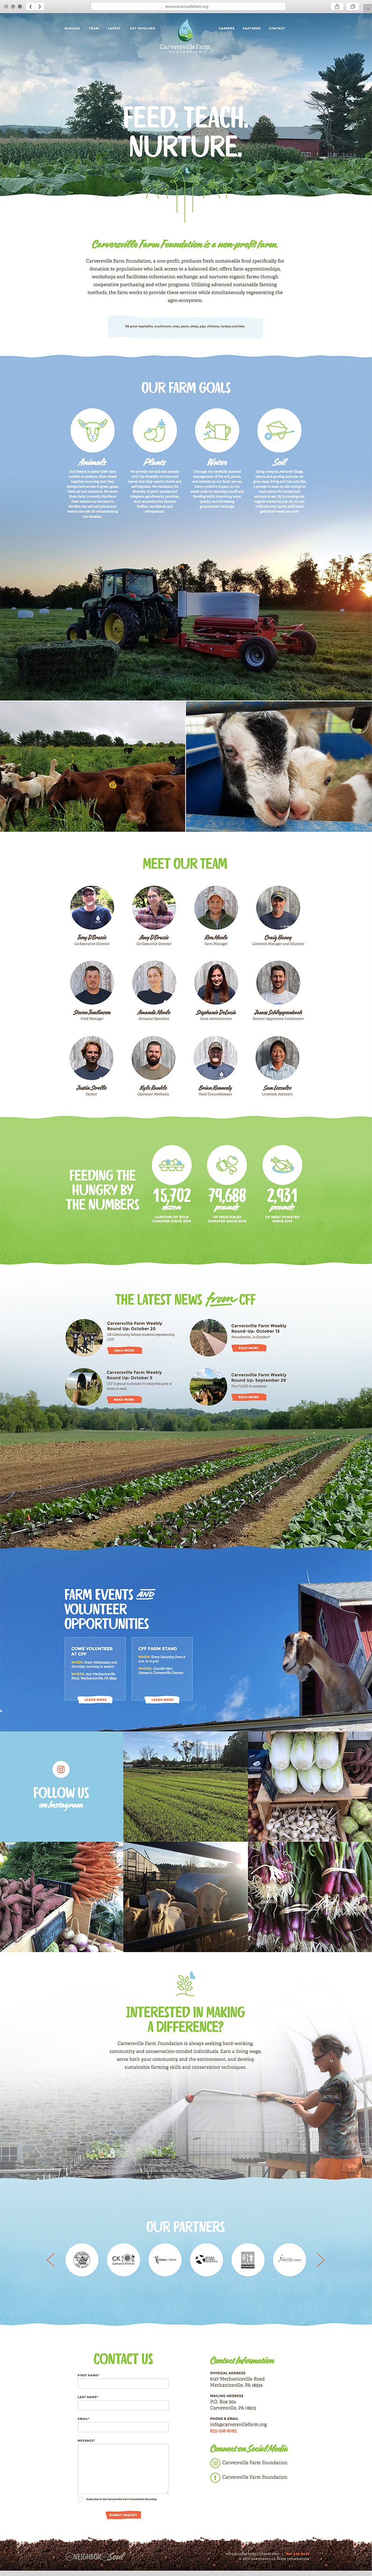 User interface design for Carversville Farm Foundation by Push10